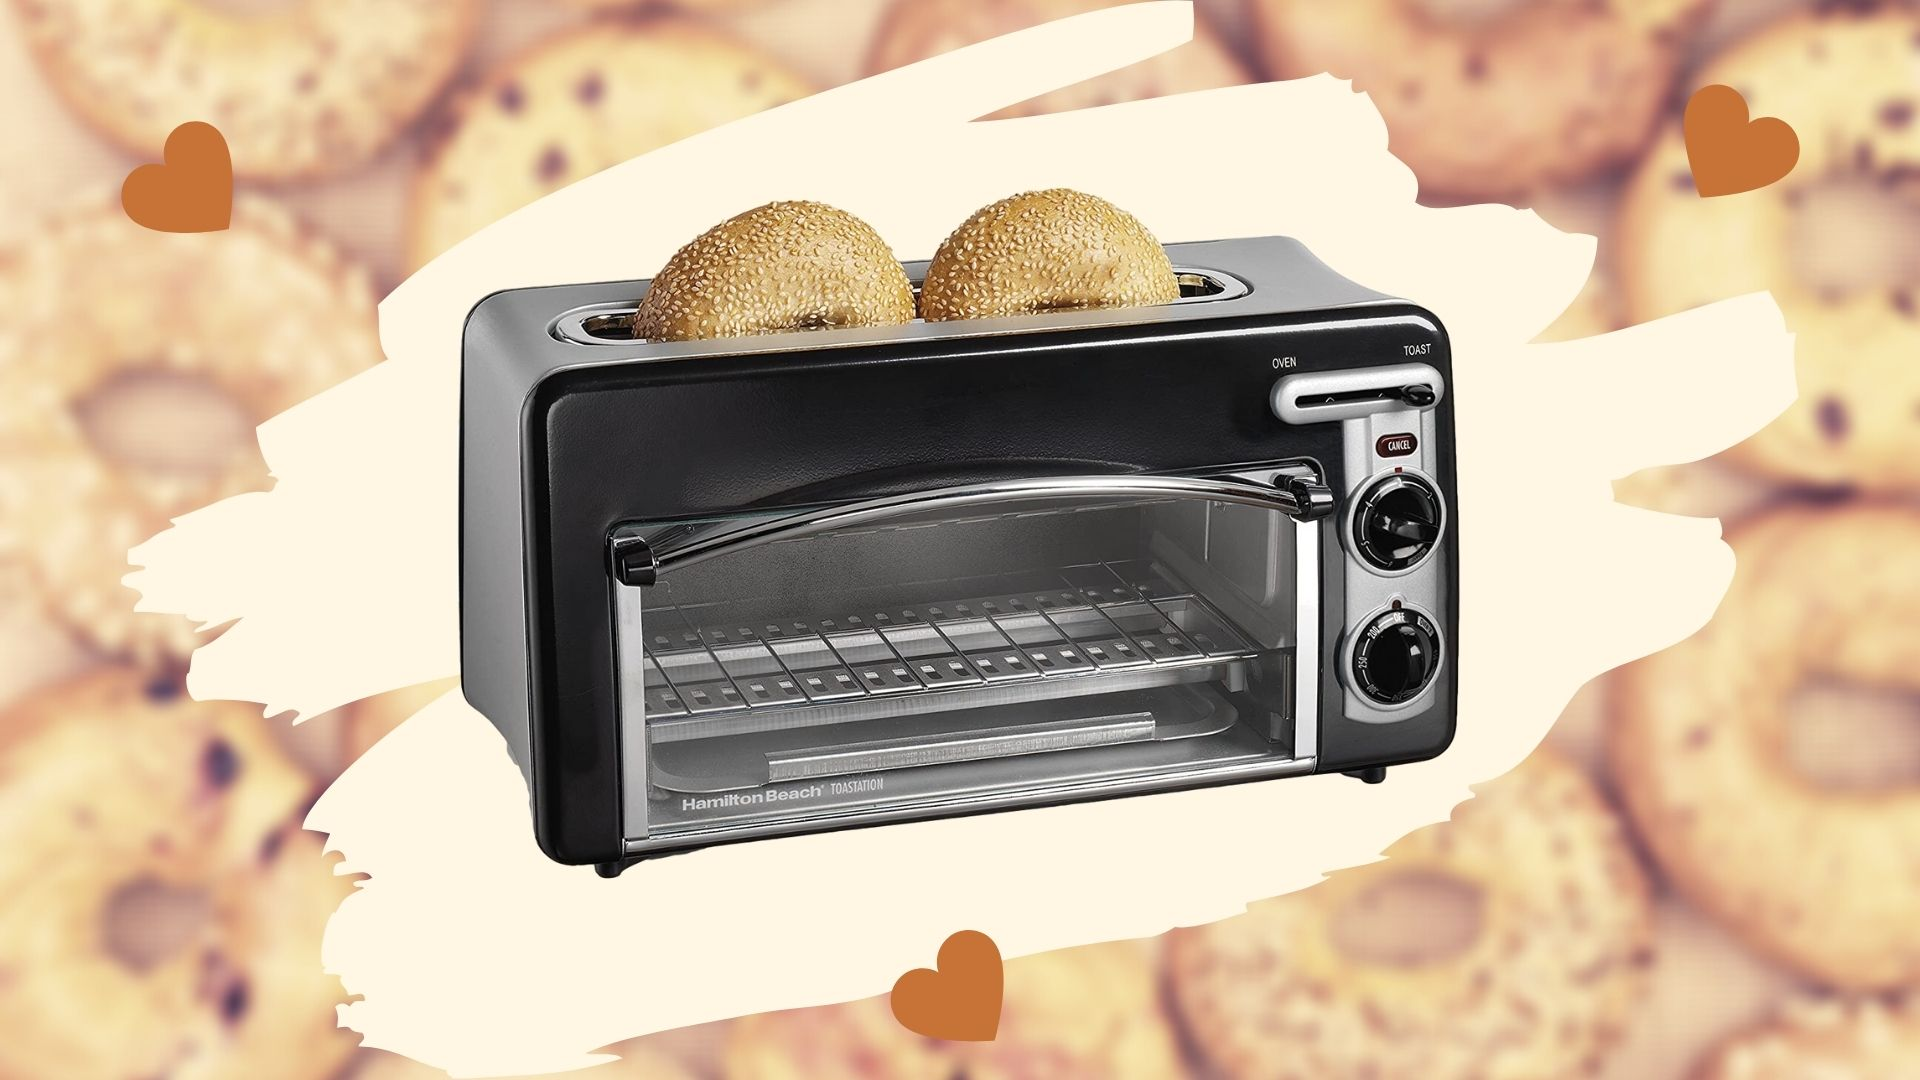 Hamilton Beach Toastation 2-in-1 Toaster Oven Toaster Review 11